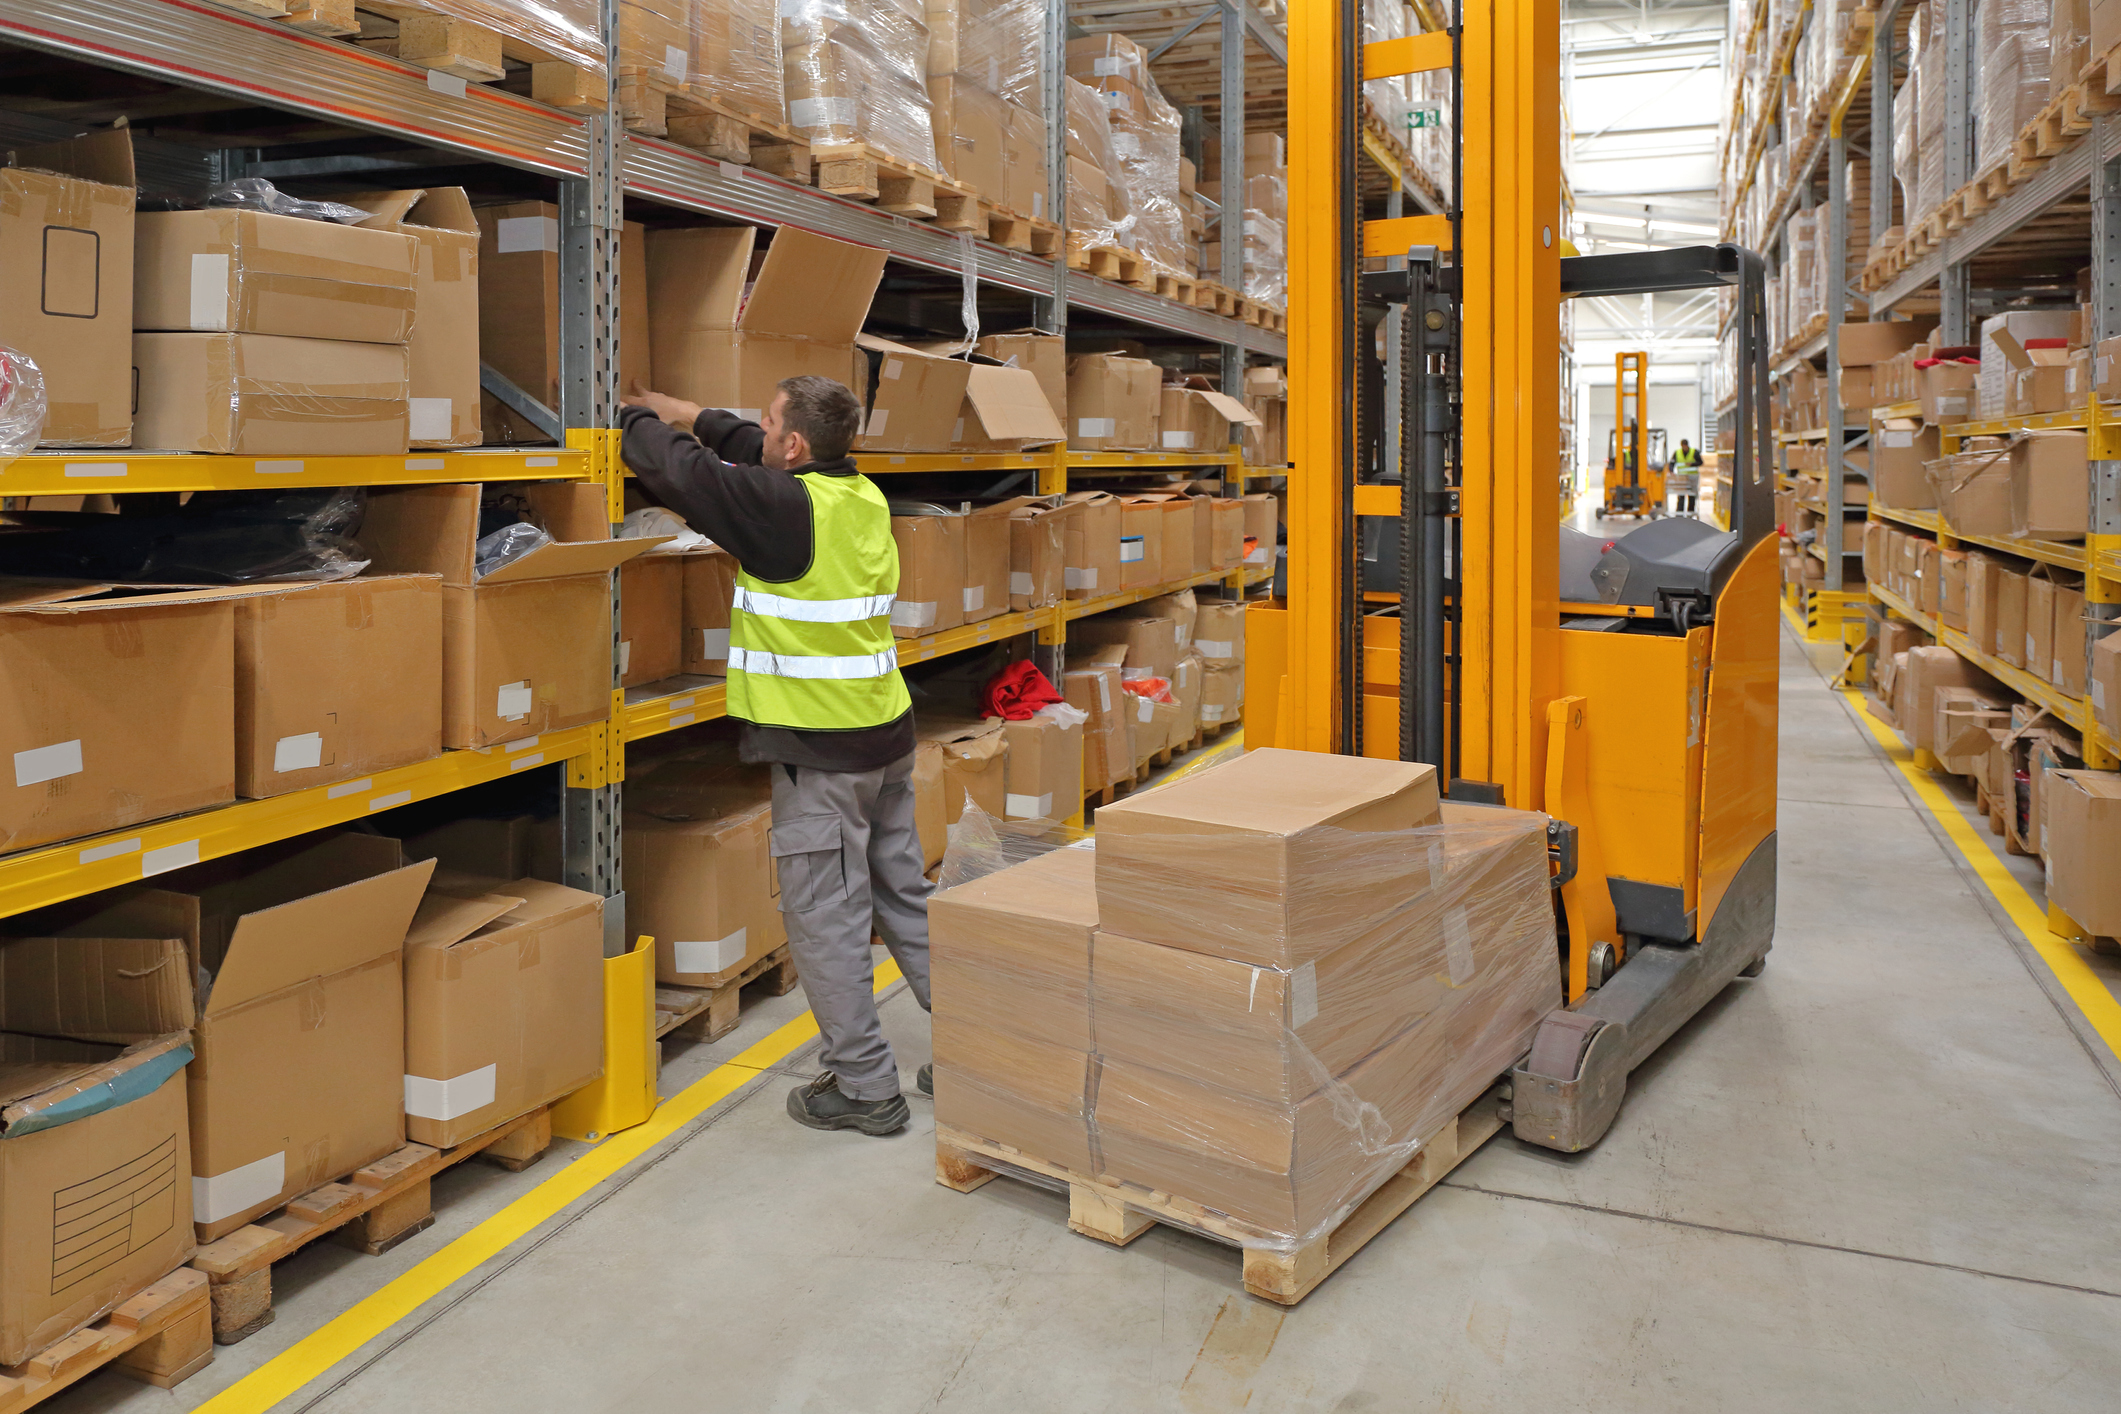 Should You Outsource Fulfillment? Things to Consider